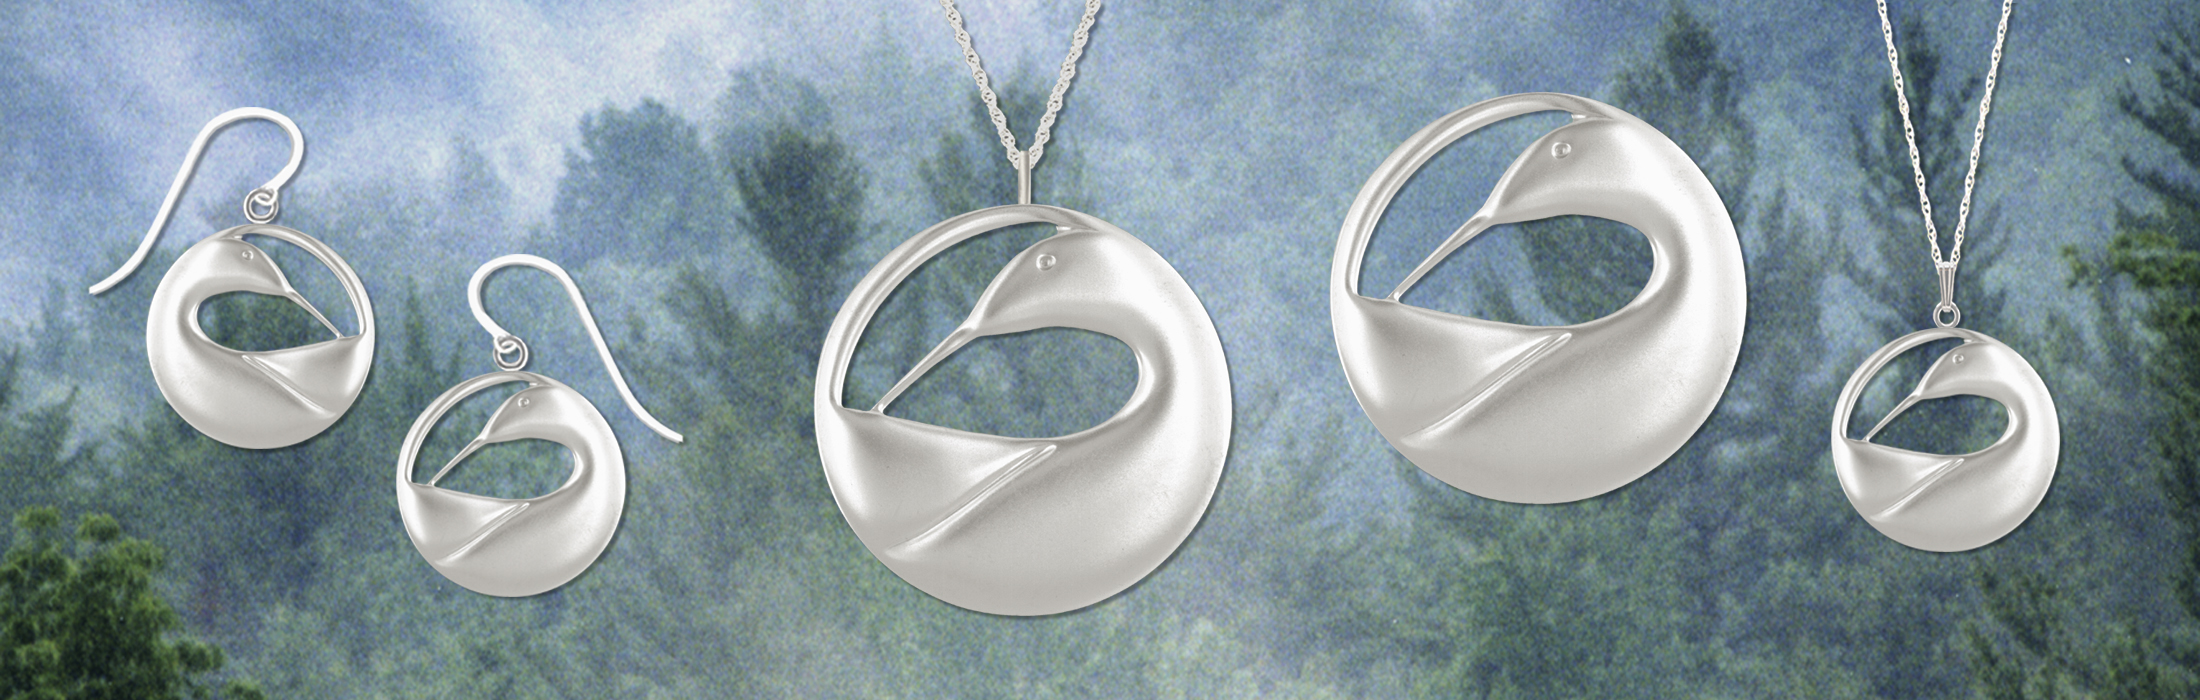 3b5f7d0e6c8fdd Lovell Designs Jewelry in Maine   Shop at Our Home Studio